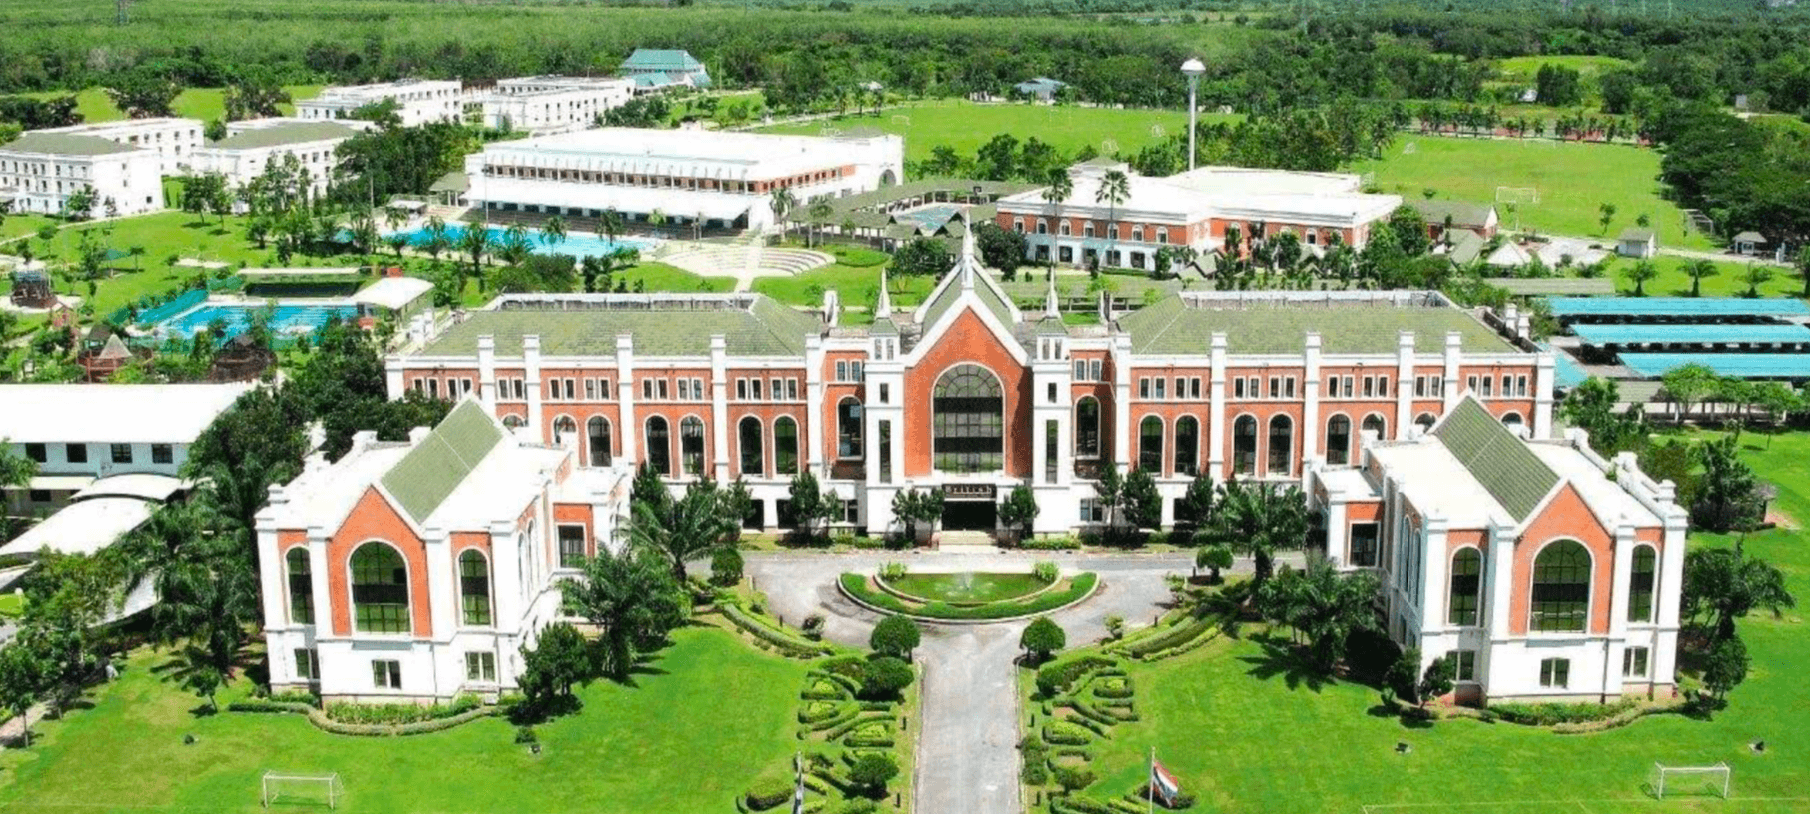 British International School, Phuket 普吉英国国际学校-SAT考场测评